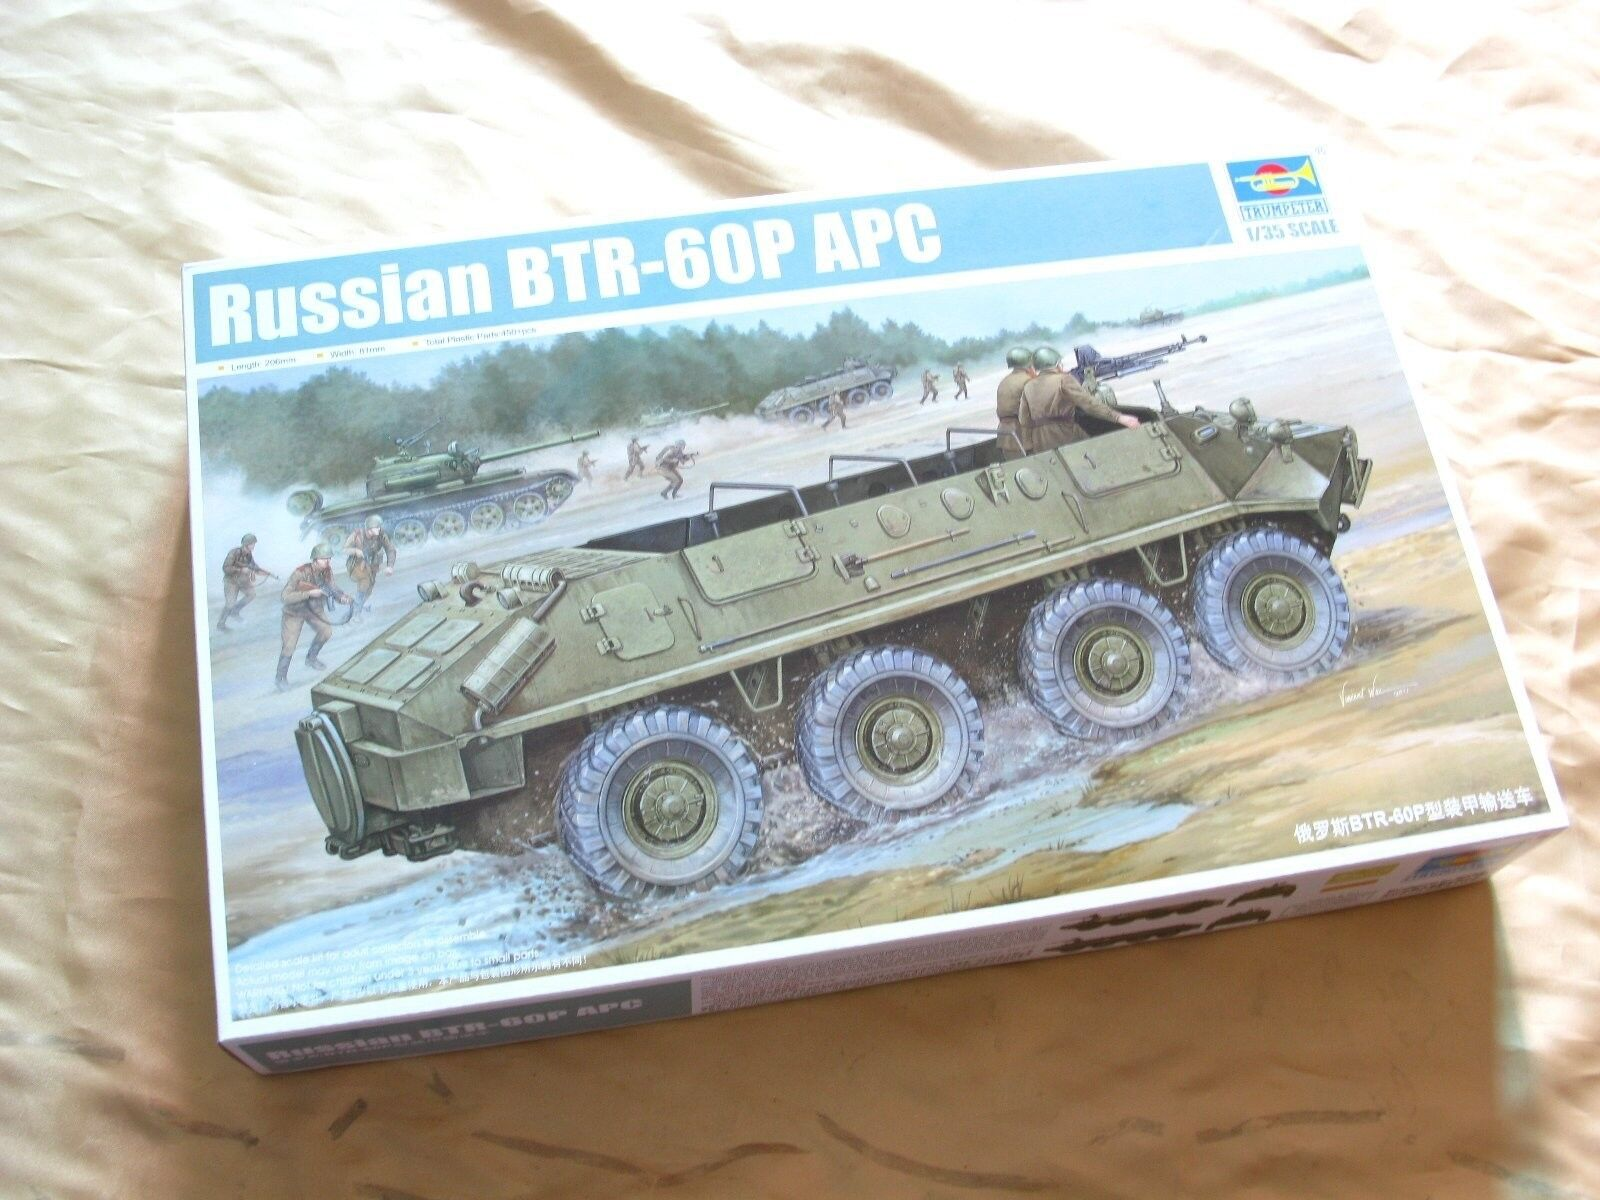 01542 Trumpeter 1 35 Model BTR-60P APC Armored Delivery Wagon Tank Vehicle Kit